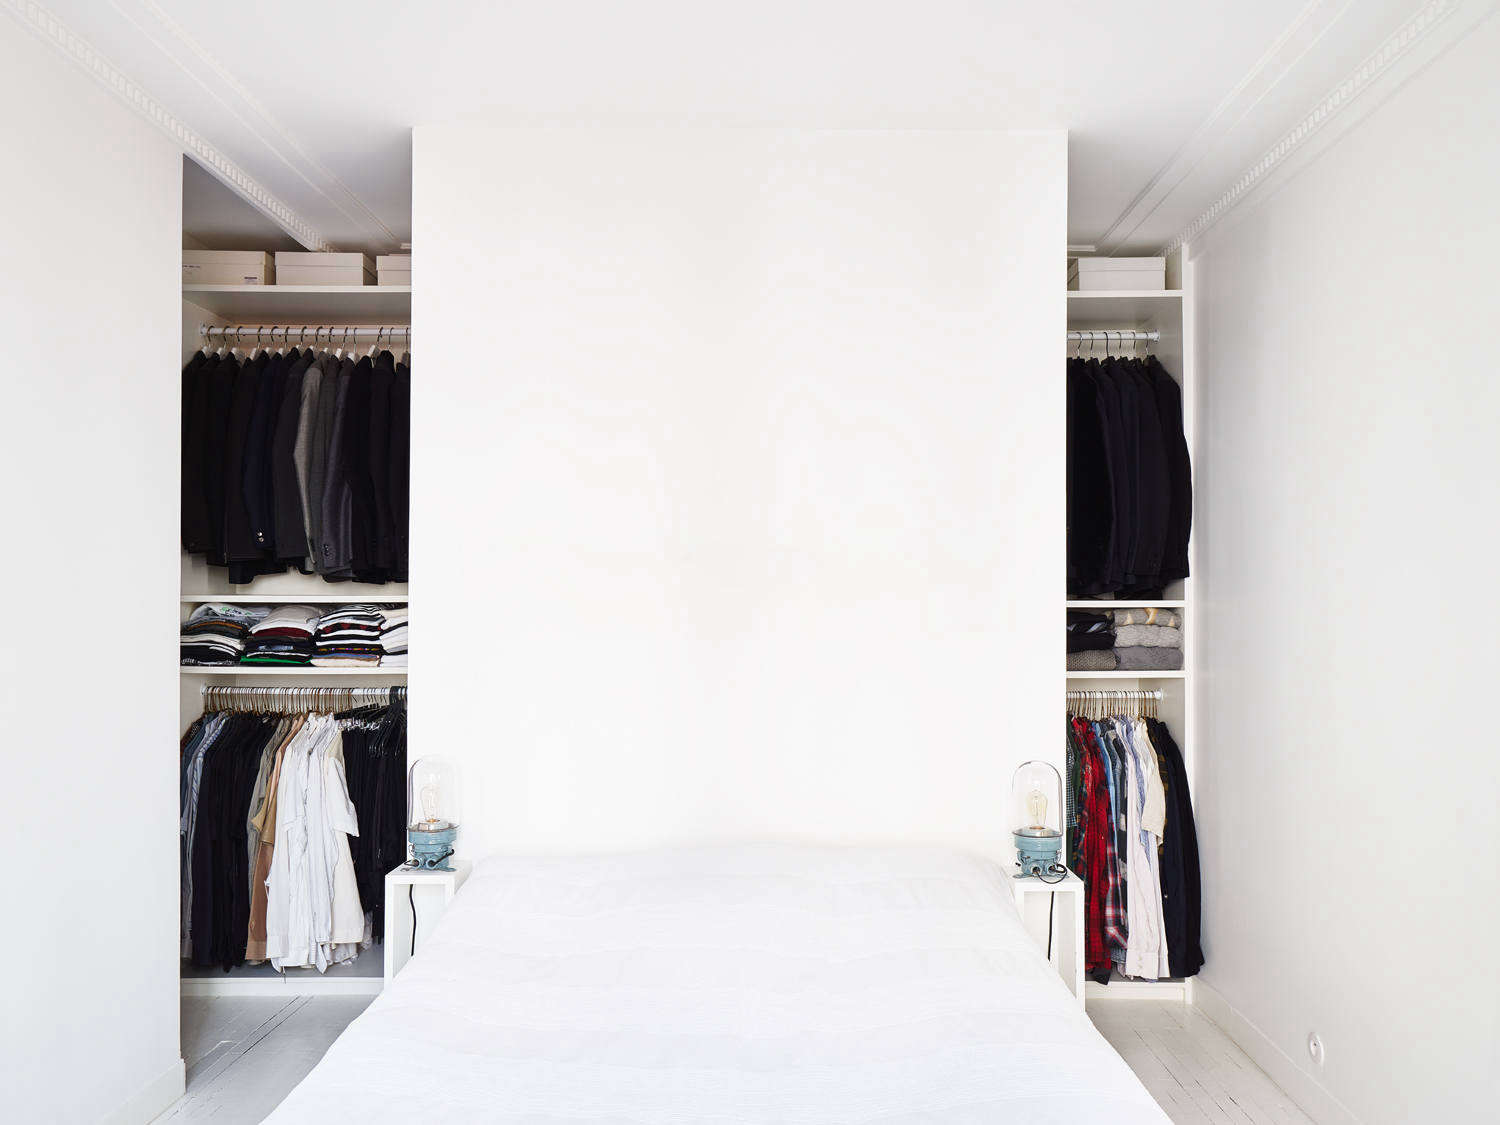 The architects of this 645-square-foot Paris apartment carved out closet space behind the bedroom to accommodate the large wardrobes of the homeowners, both of whom work in fashion. See more in Think Big: 9 Small-Space Layout Ideas to Steal from a Petite Paris Apartment. Photograph by David Foessel, courtesy of Septembre Architecture.